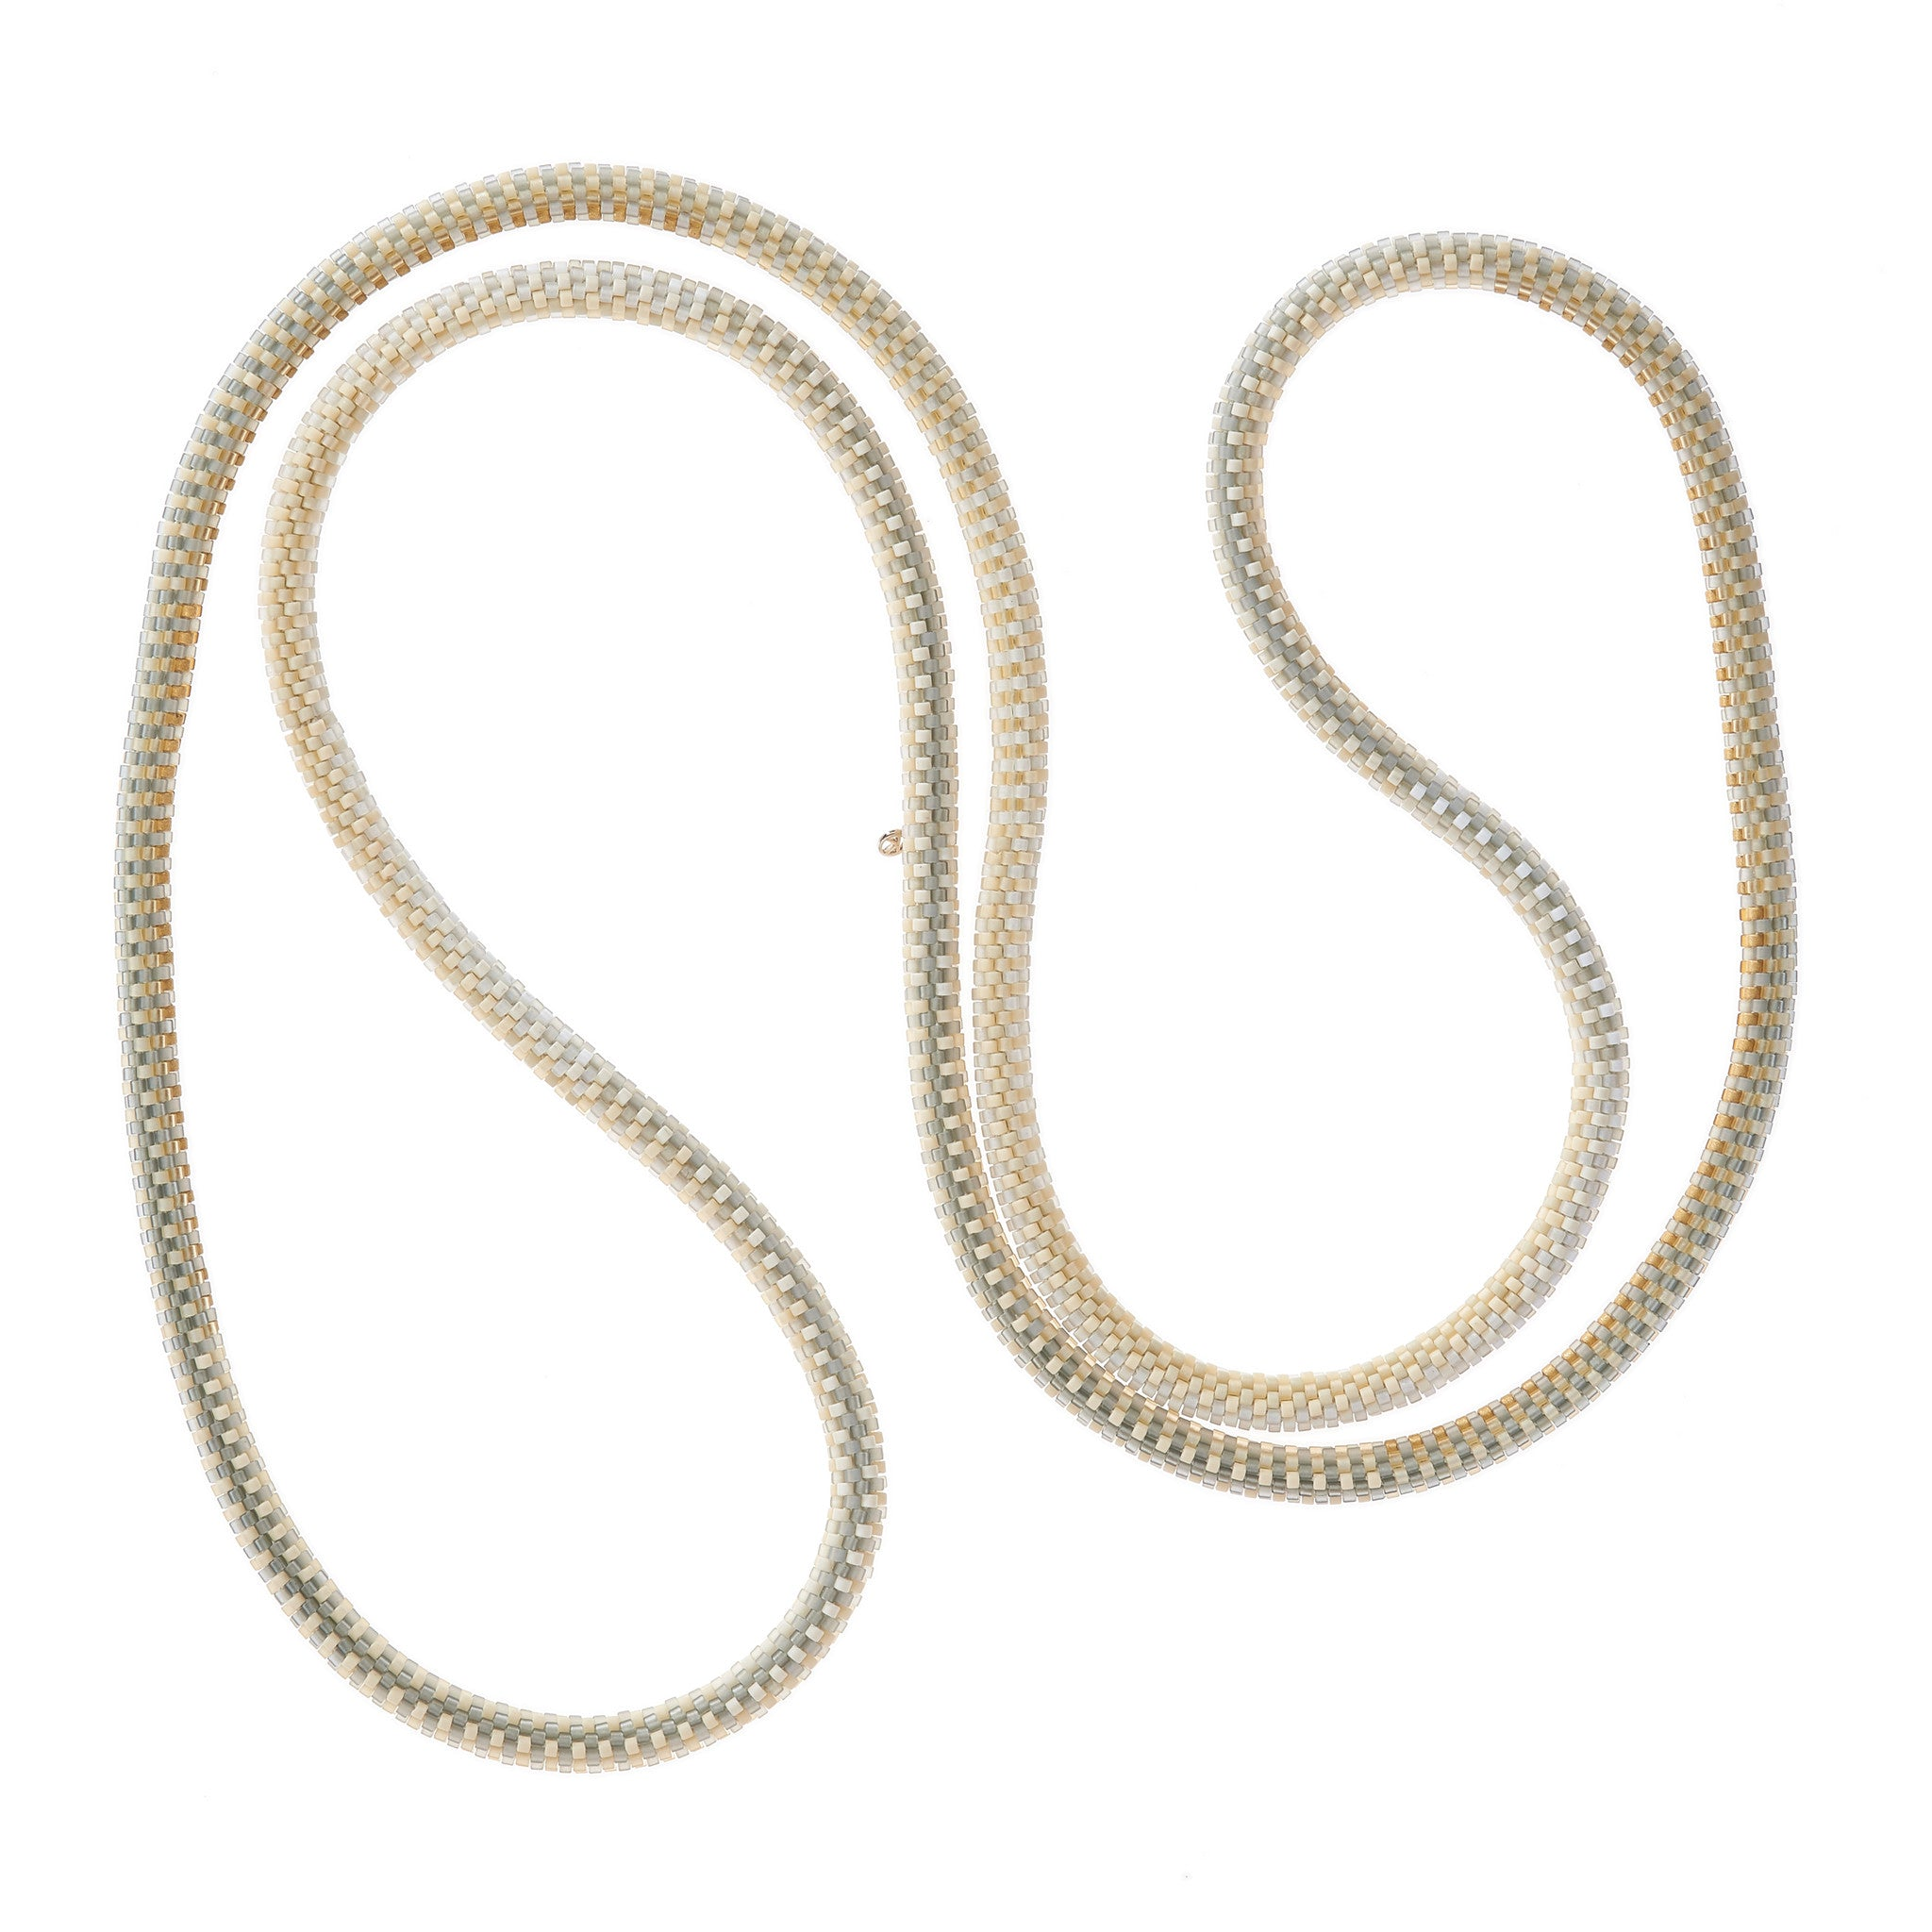 White and Gold Rope